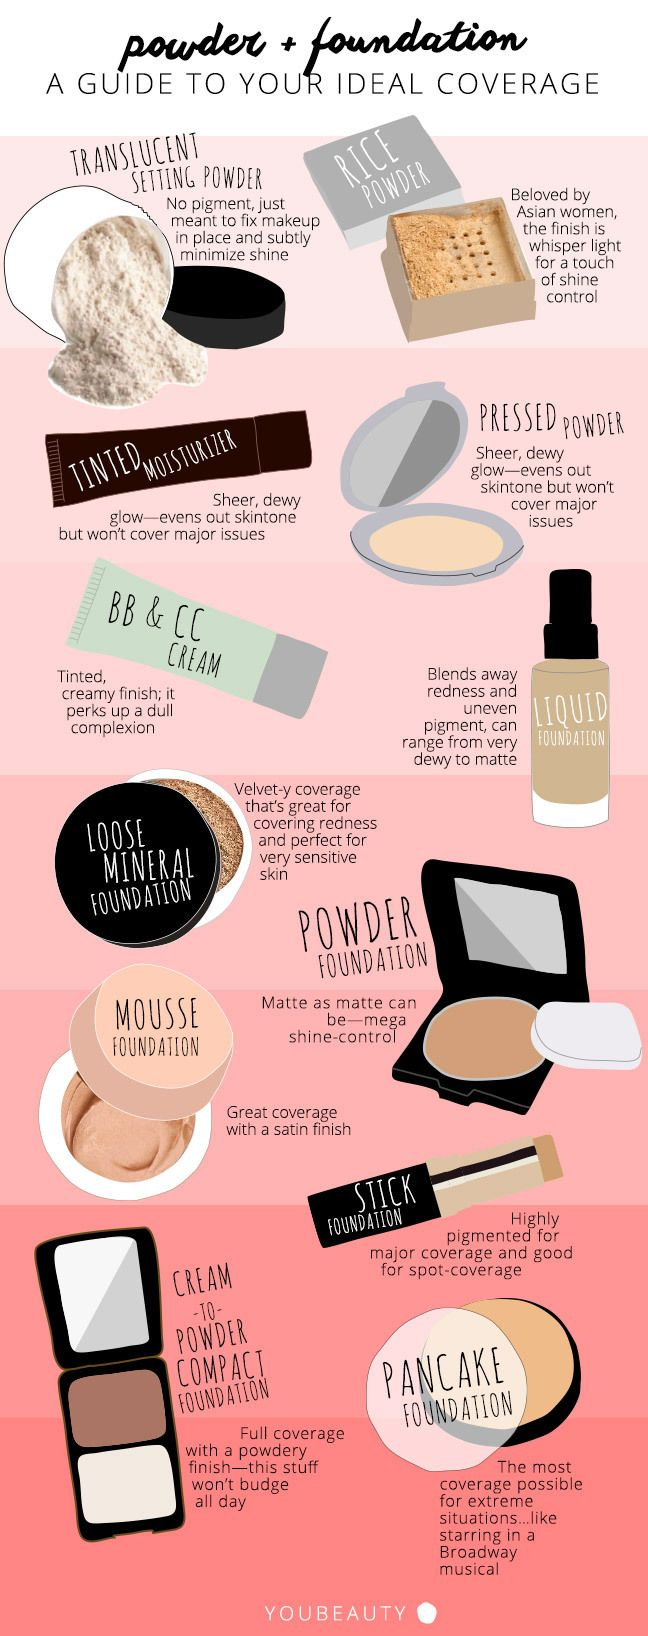 I use liquid and pressed powder. But if you're absolutely desperate and nothing else works, pancake is a great way to cover up any imperfections. What I've used, though, can cause breakouts if you apply too heavily and aren't careful to remove, because it has oils. So use carefully!